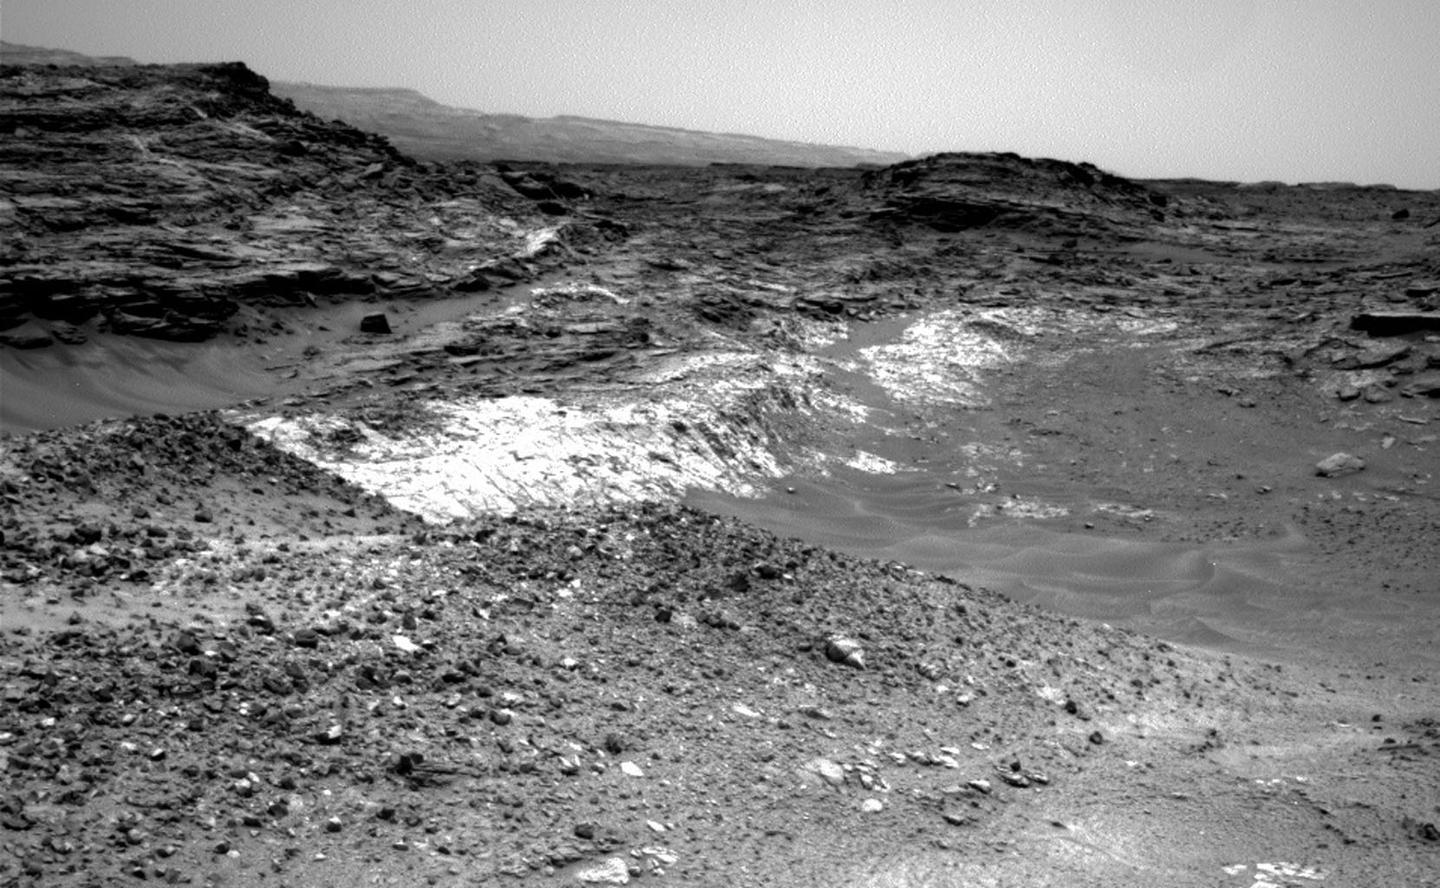 Example of the type of geological feature that the Curiosity team is hoping to examine